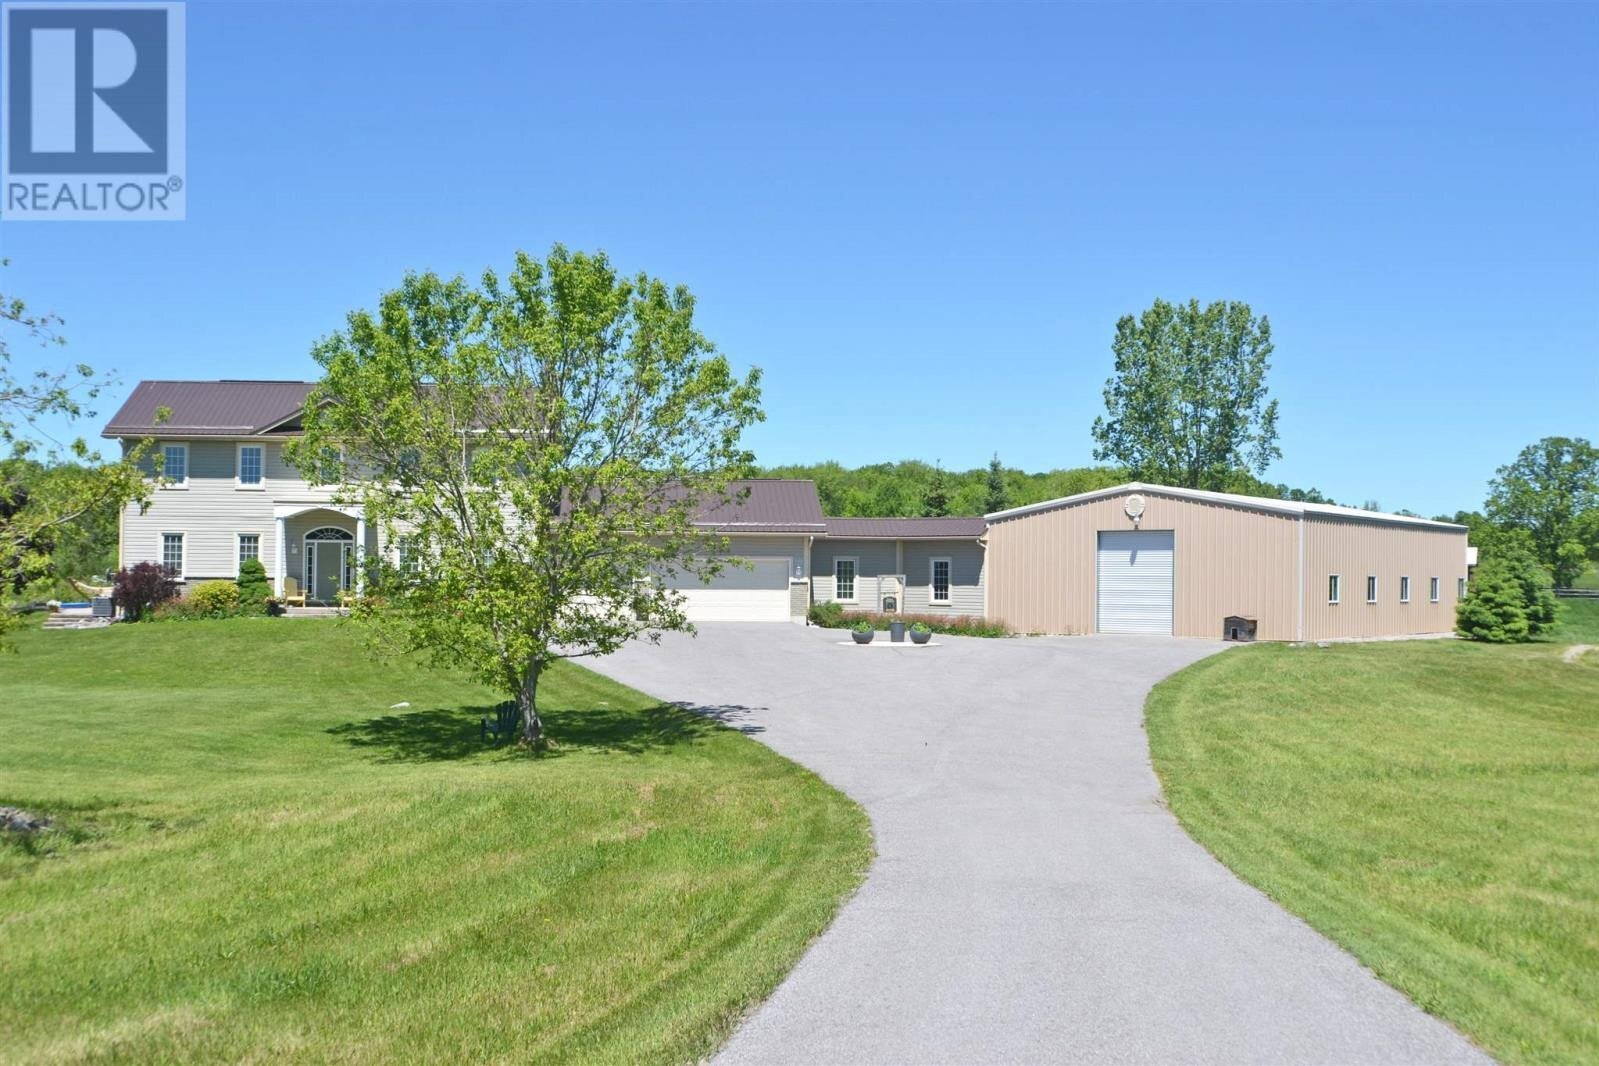 Residential property for sale at 524 Hoover Rd Stirling Rawdon Ontario - MLS: K20006201